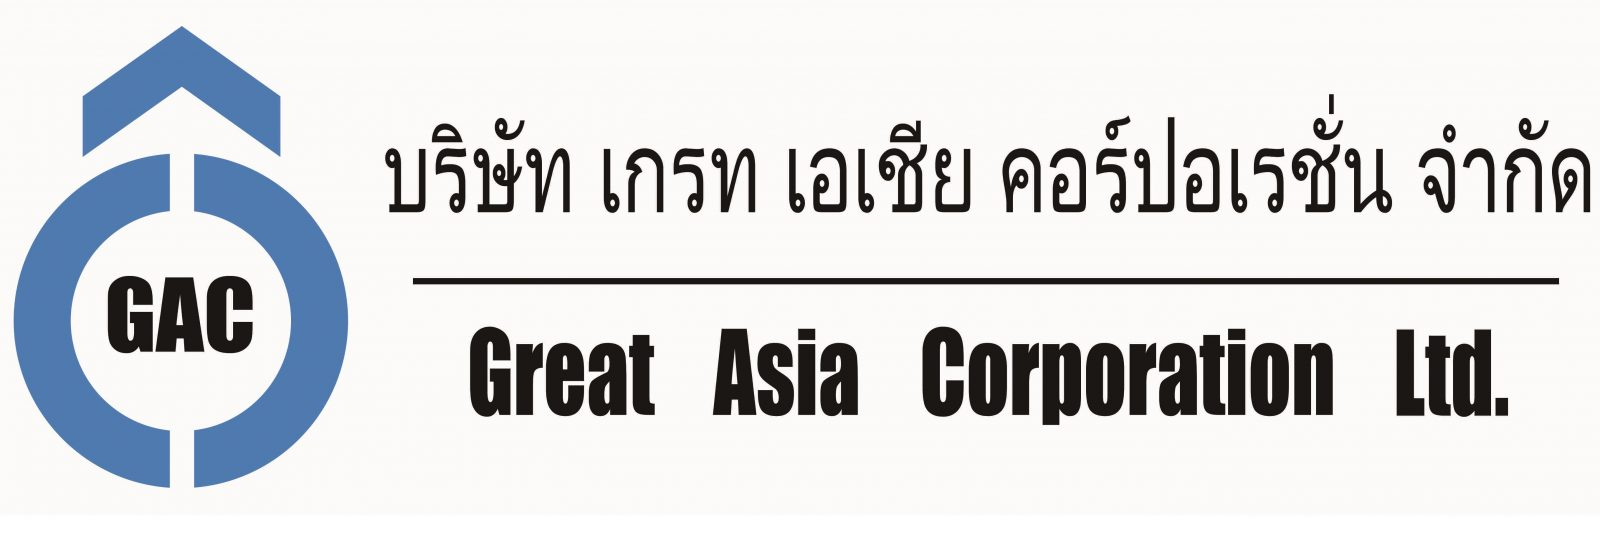 Great Asia Corporation Limited